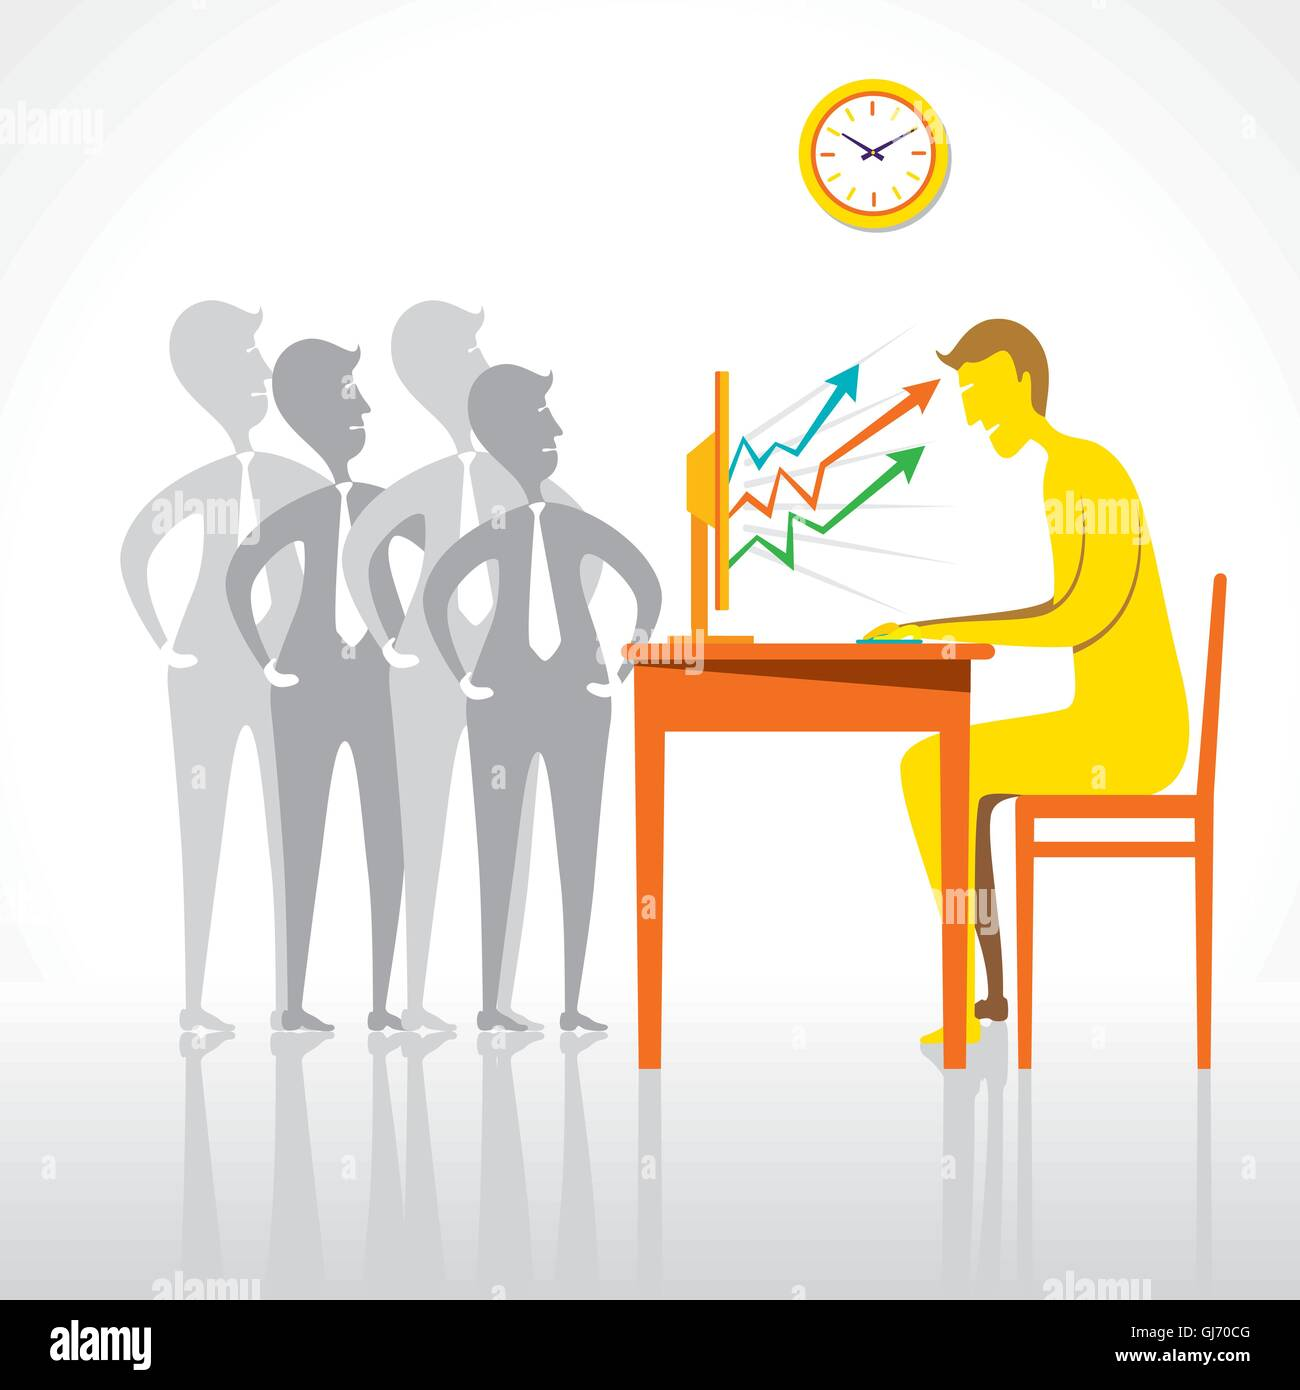 online work with share trading or business growth graph concept vector - Stock Image